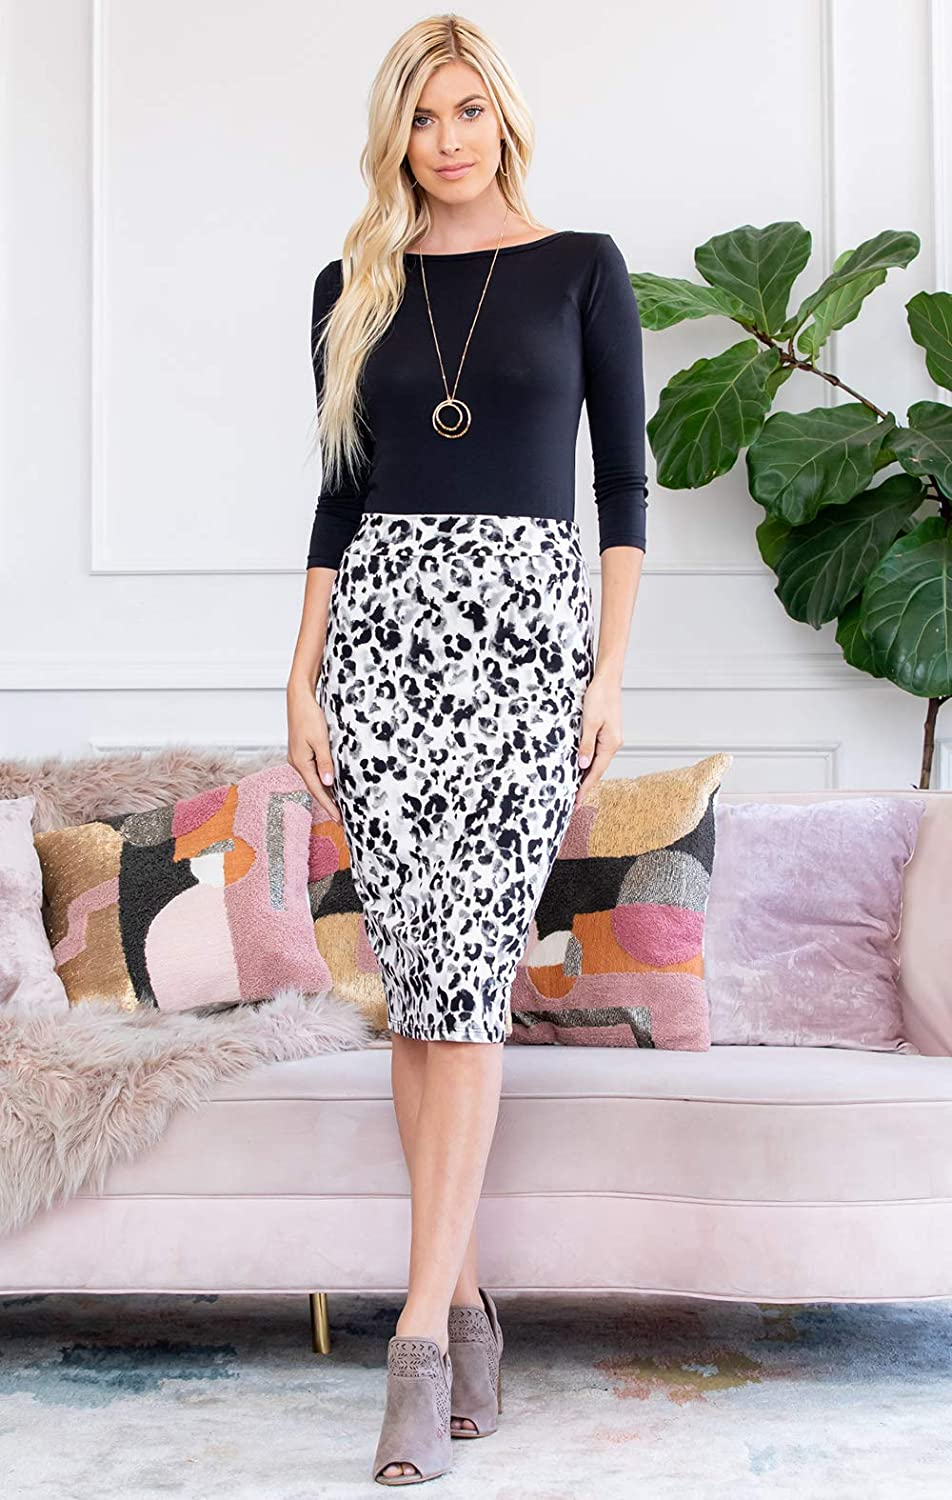 High Waist Soft Stretch Jersey Slim Fit Casual Office Skirt Floral Leopard Feather Printed Pencil Skirt